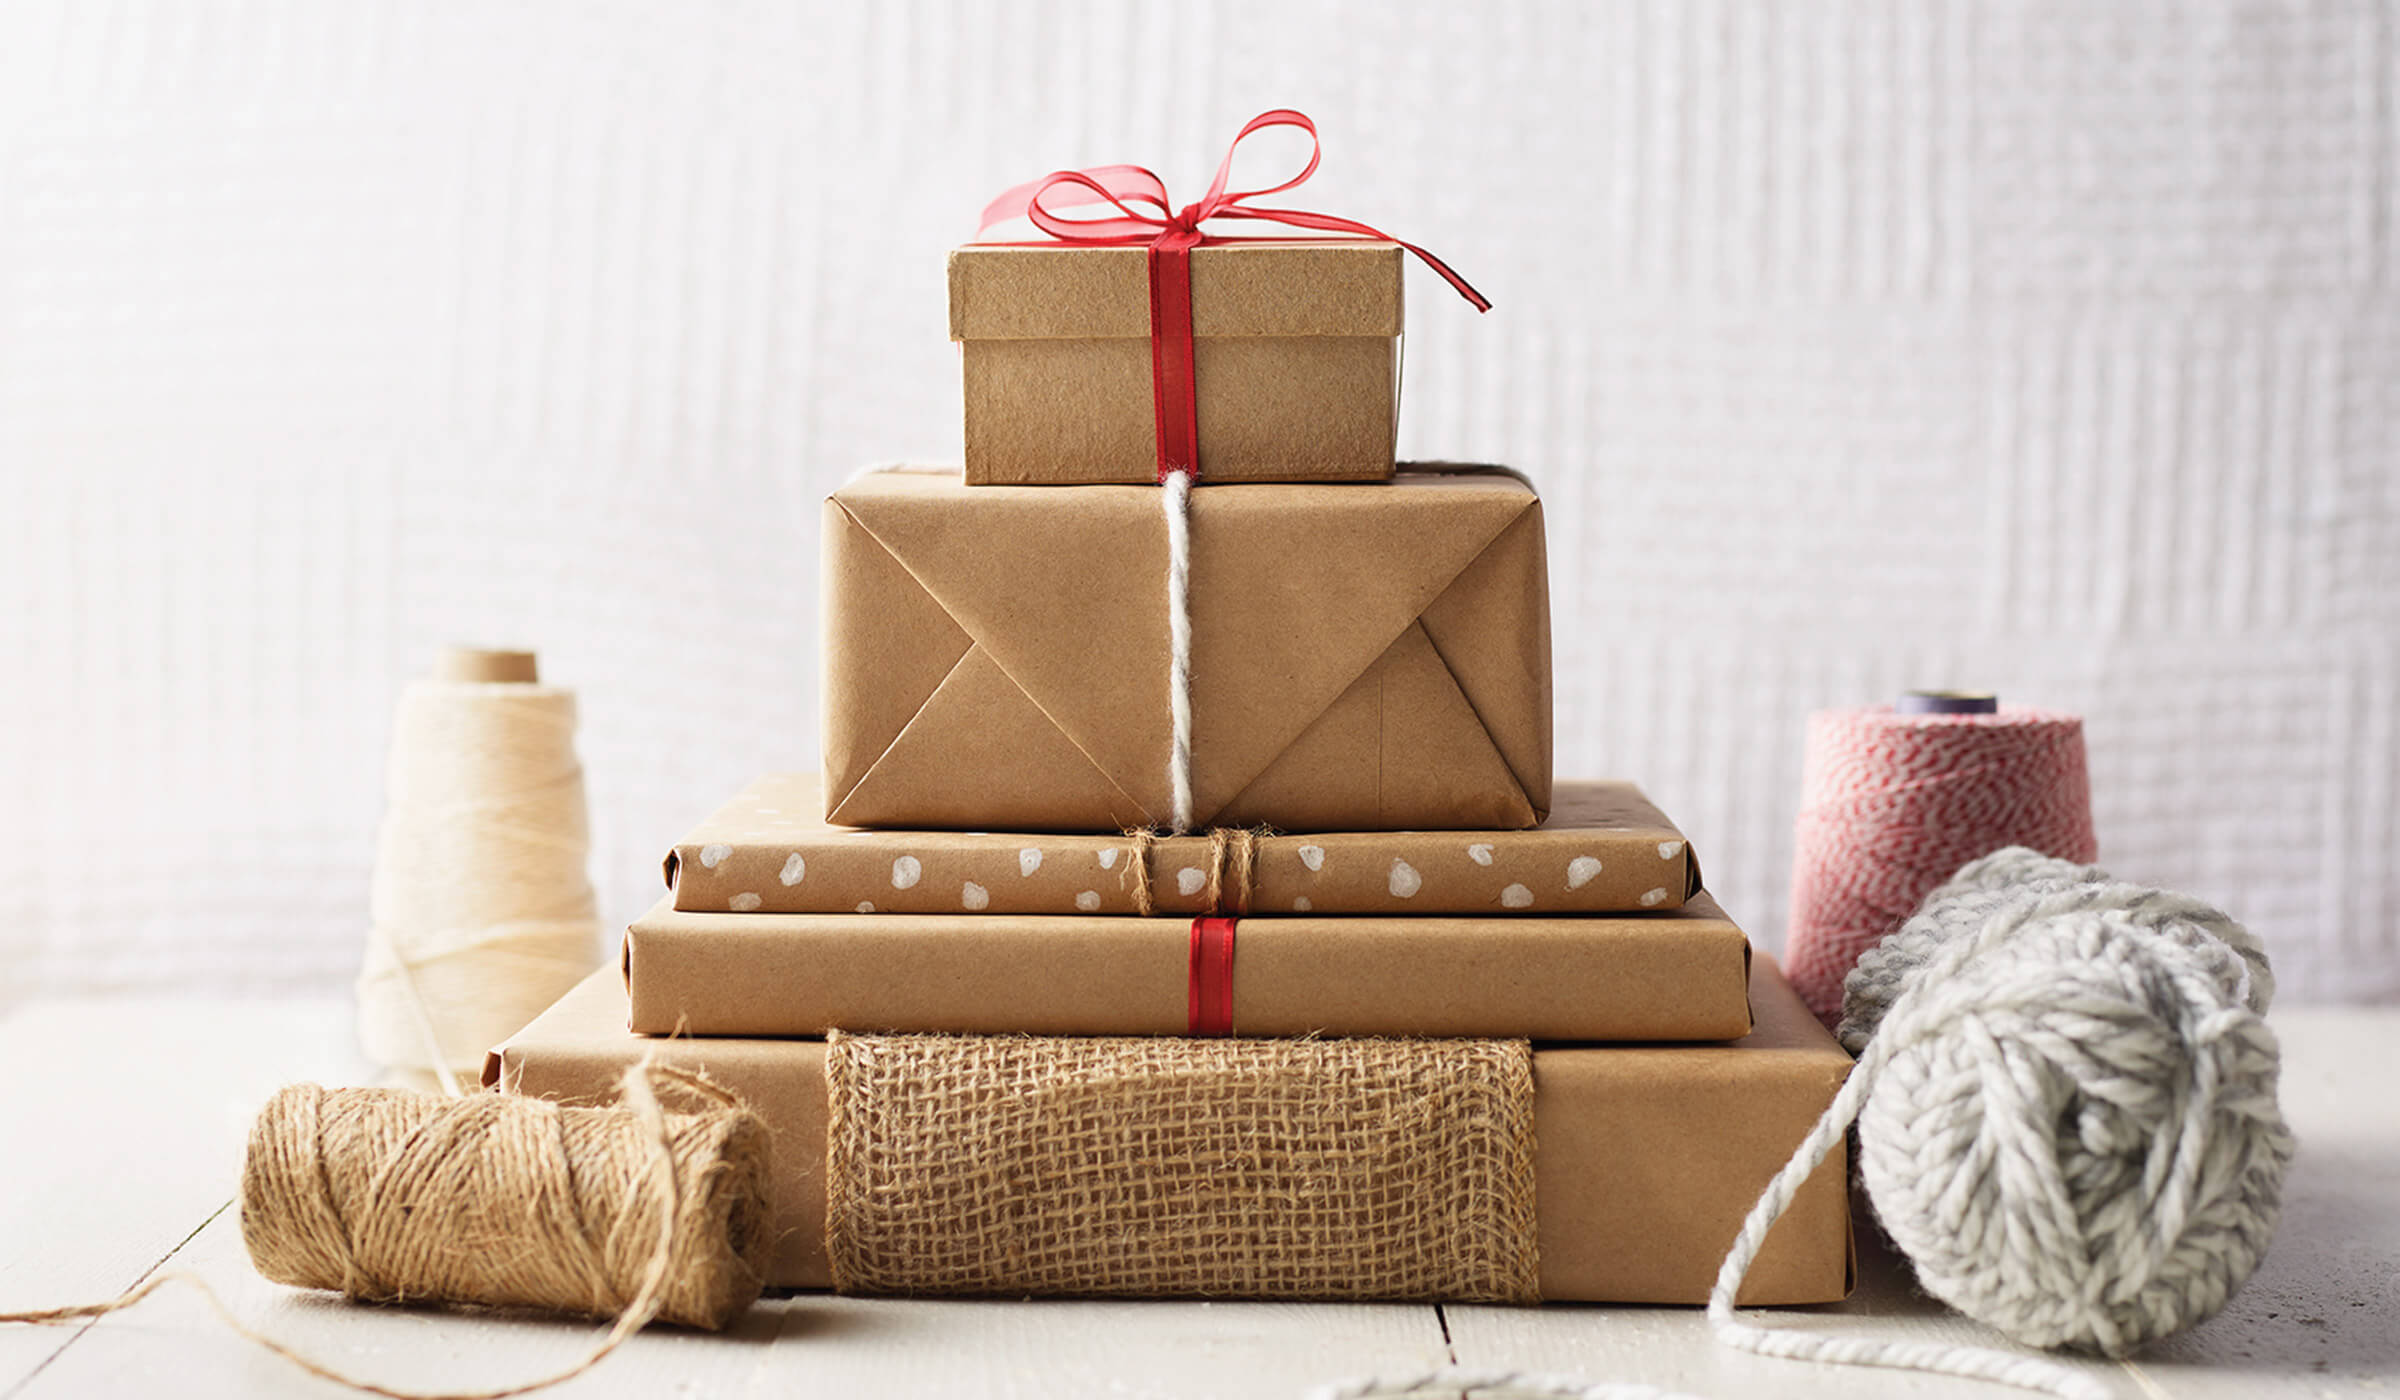 Create A Fun Non Traditional Centerpiece By Wrapping Objects From Around Your Home In Kraft Paper Books Empty Boxes And Pantry Items Are All Fair Game